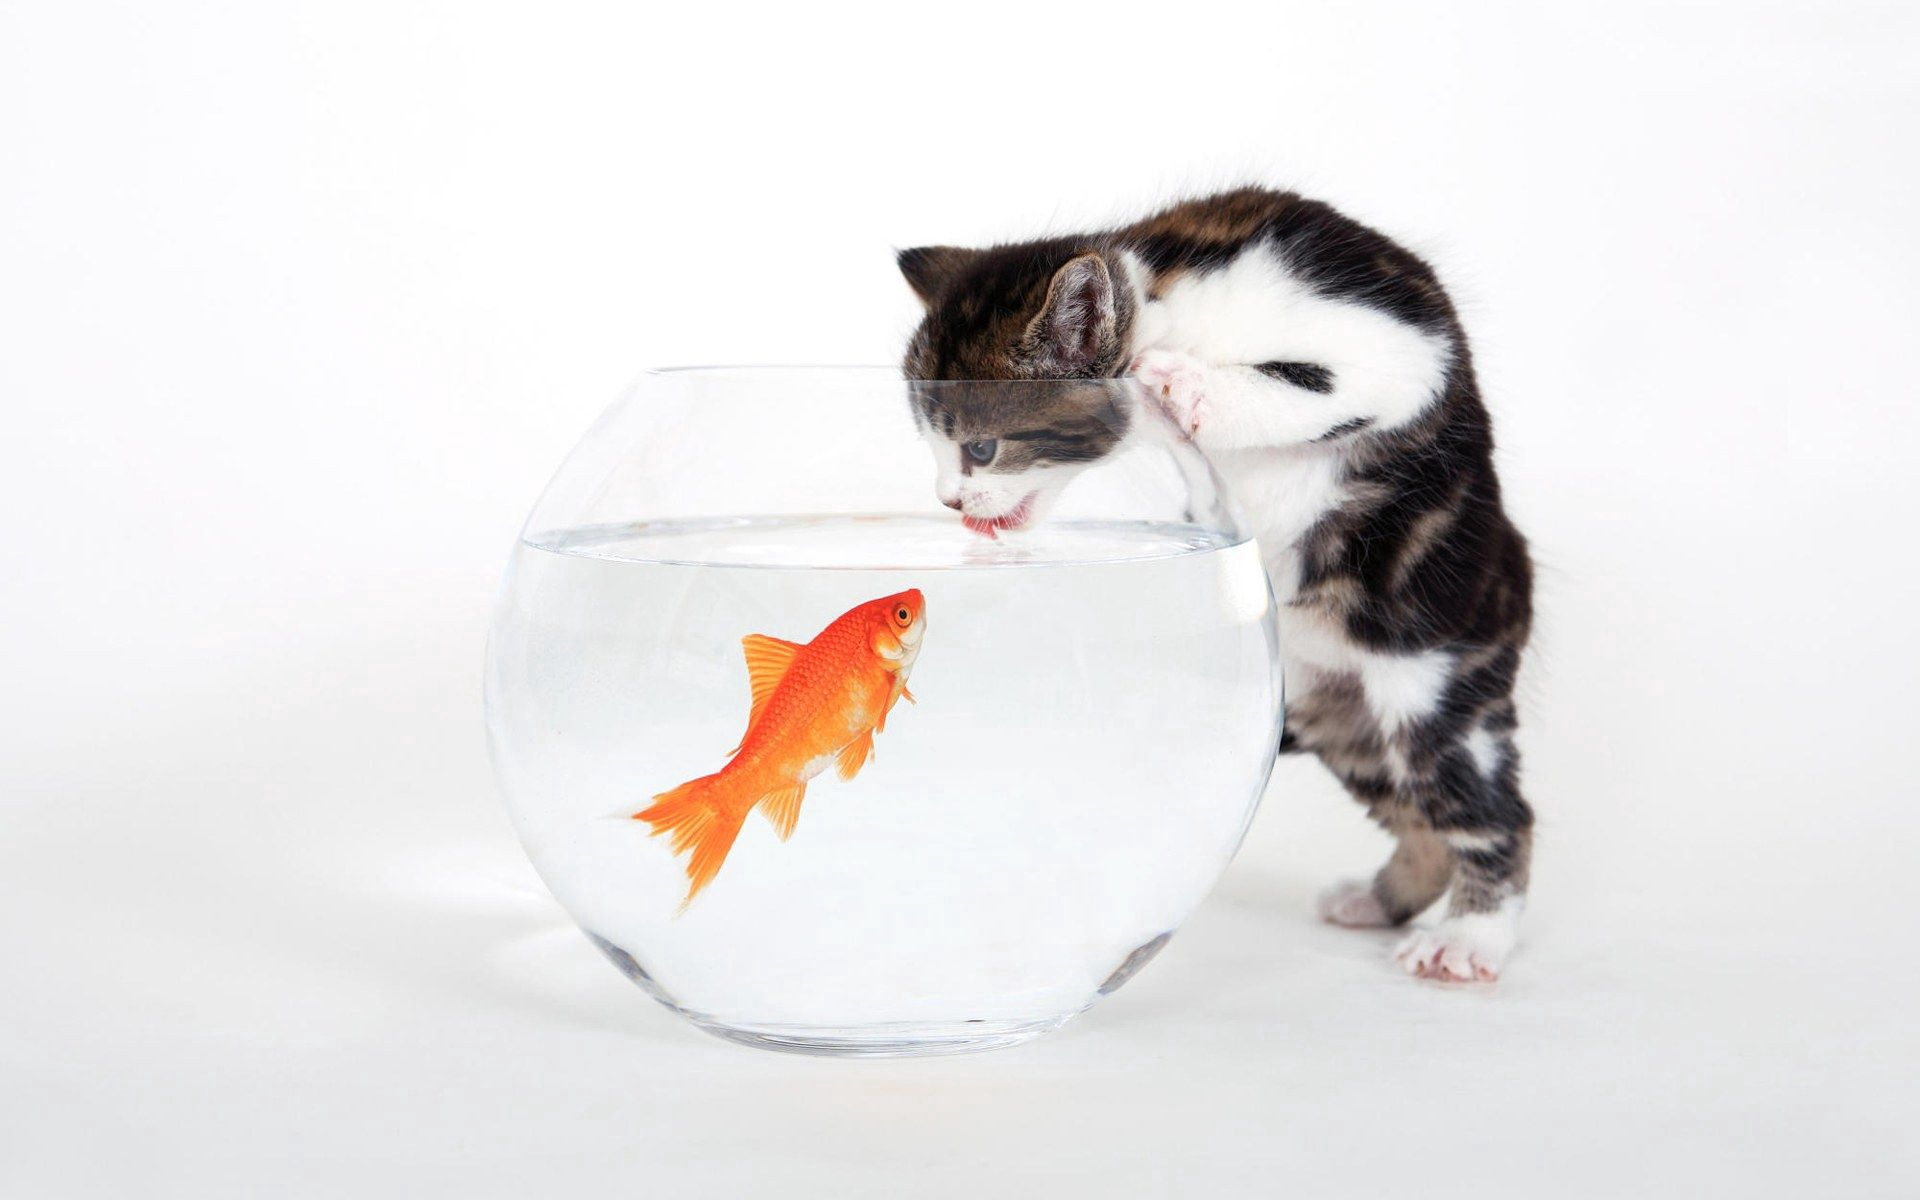 117870 Screensavers and Wallpapers Aquarium for phone. Download Animals, Kitty, Kitten, Aquarium, Fish, Curiosity pictures for free